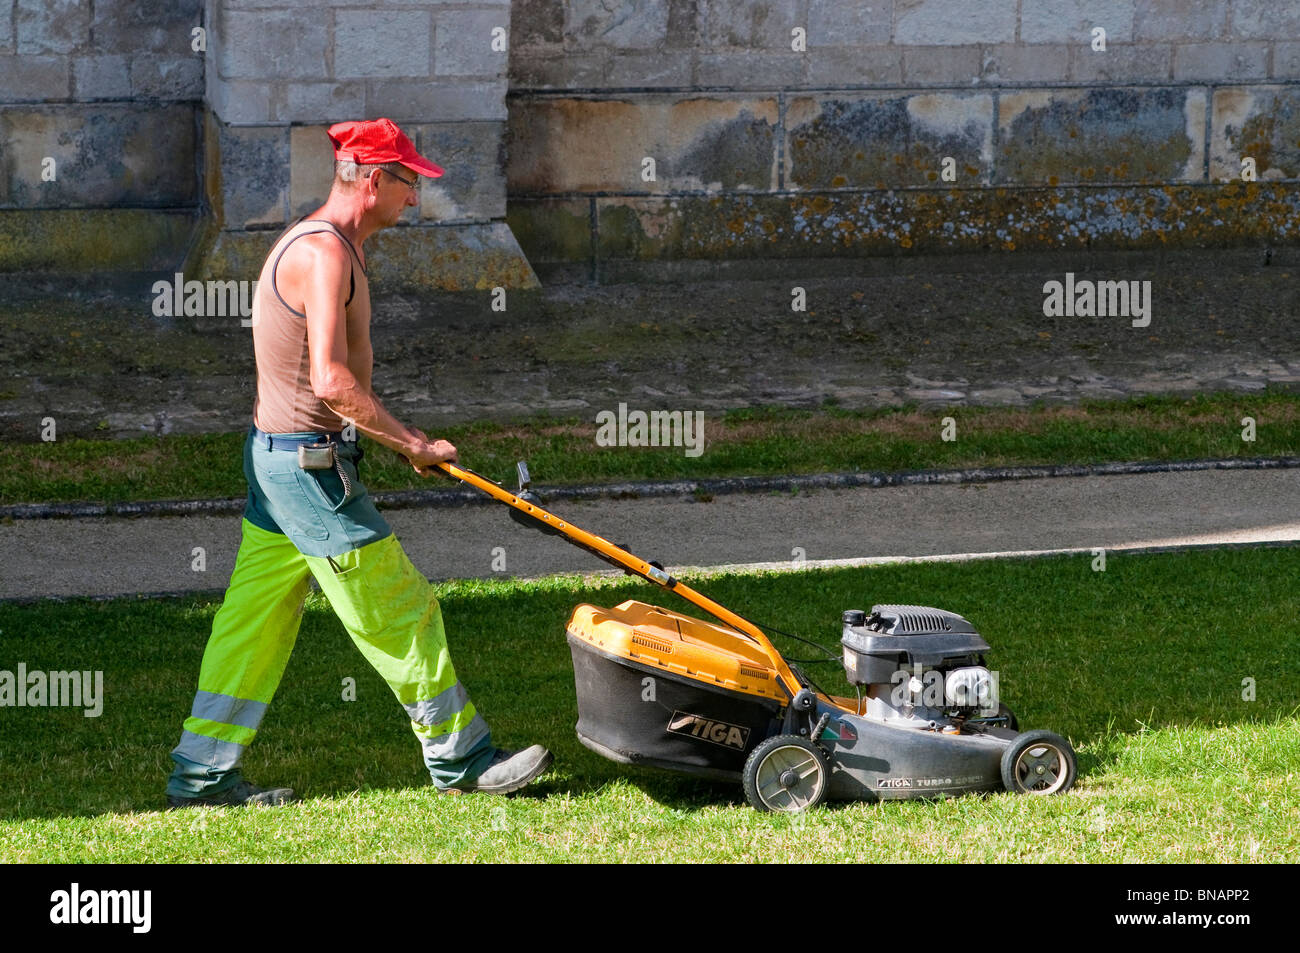 Town council workman mowing grass - France. - Stock Image